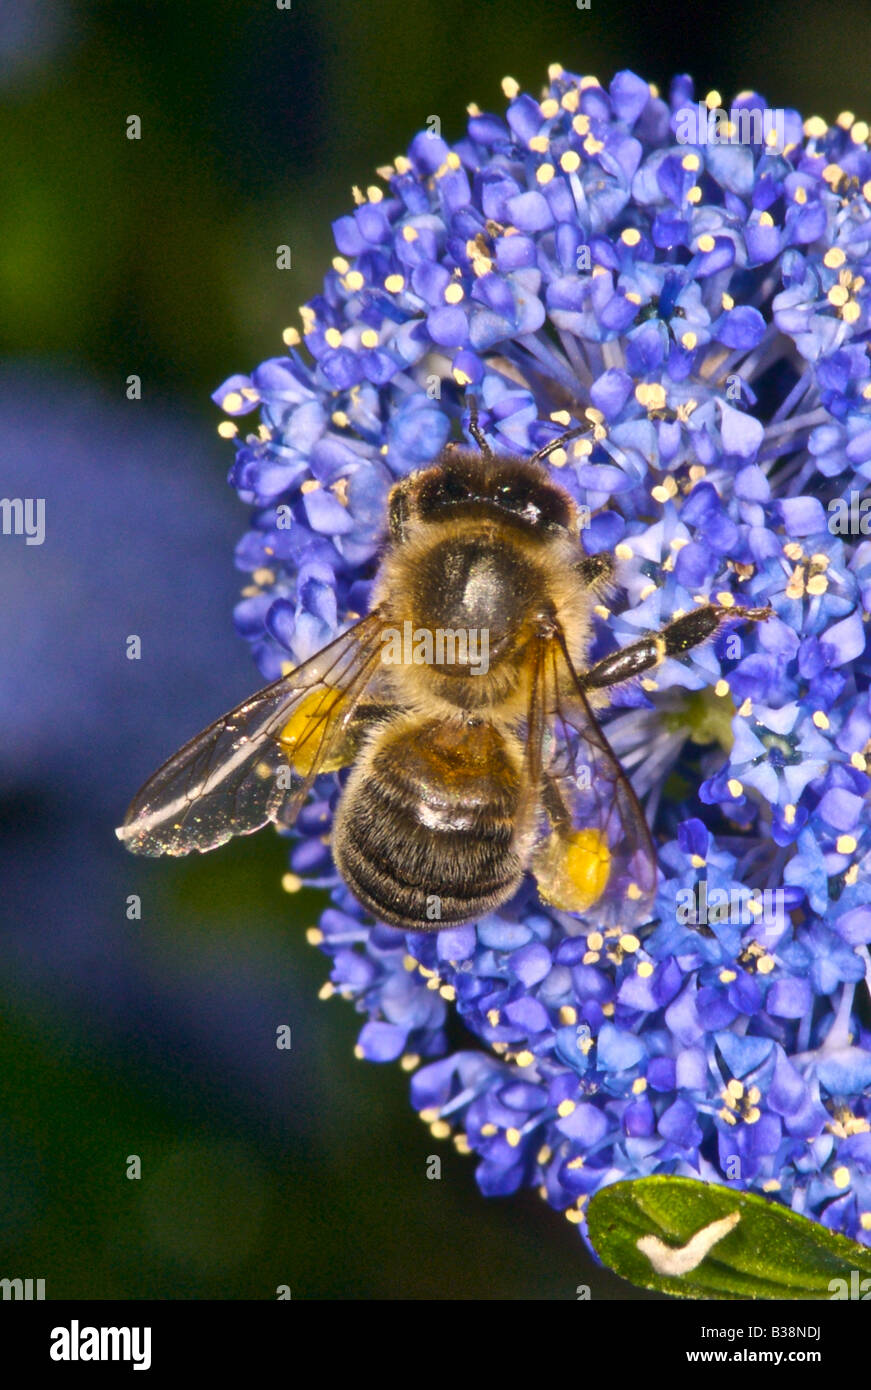 Honeybee gathering nectar and pollen honey bee - Stock Image